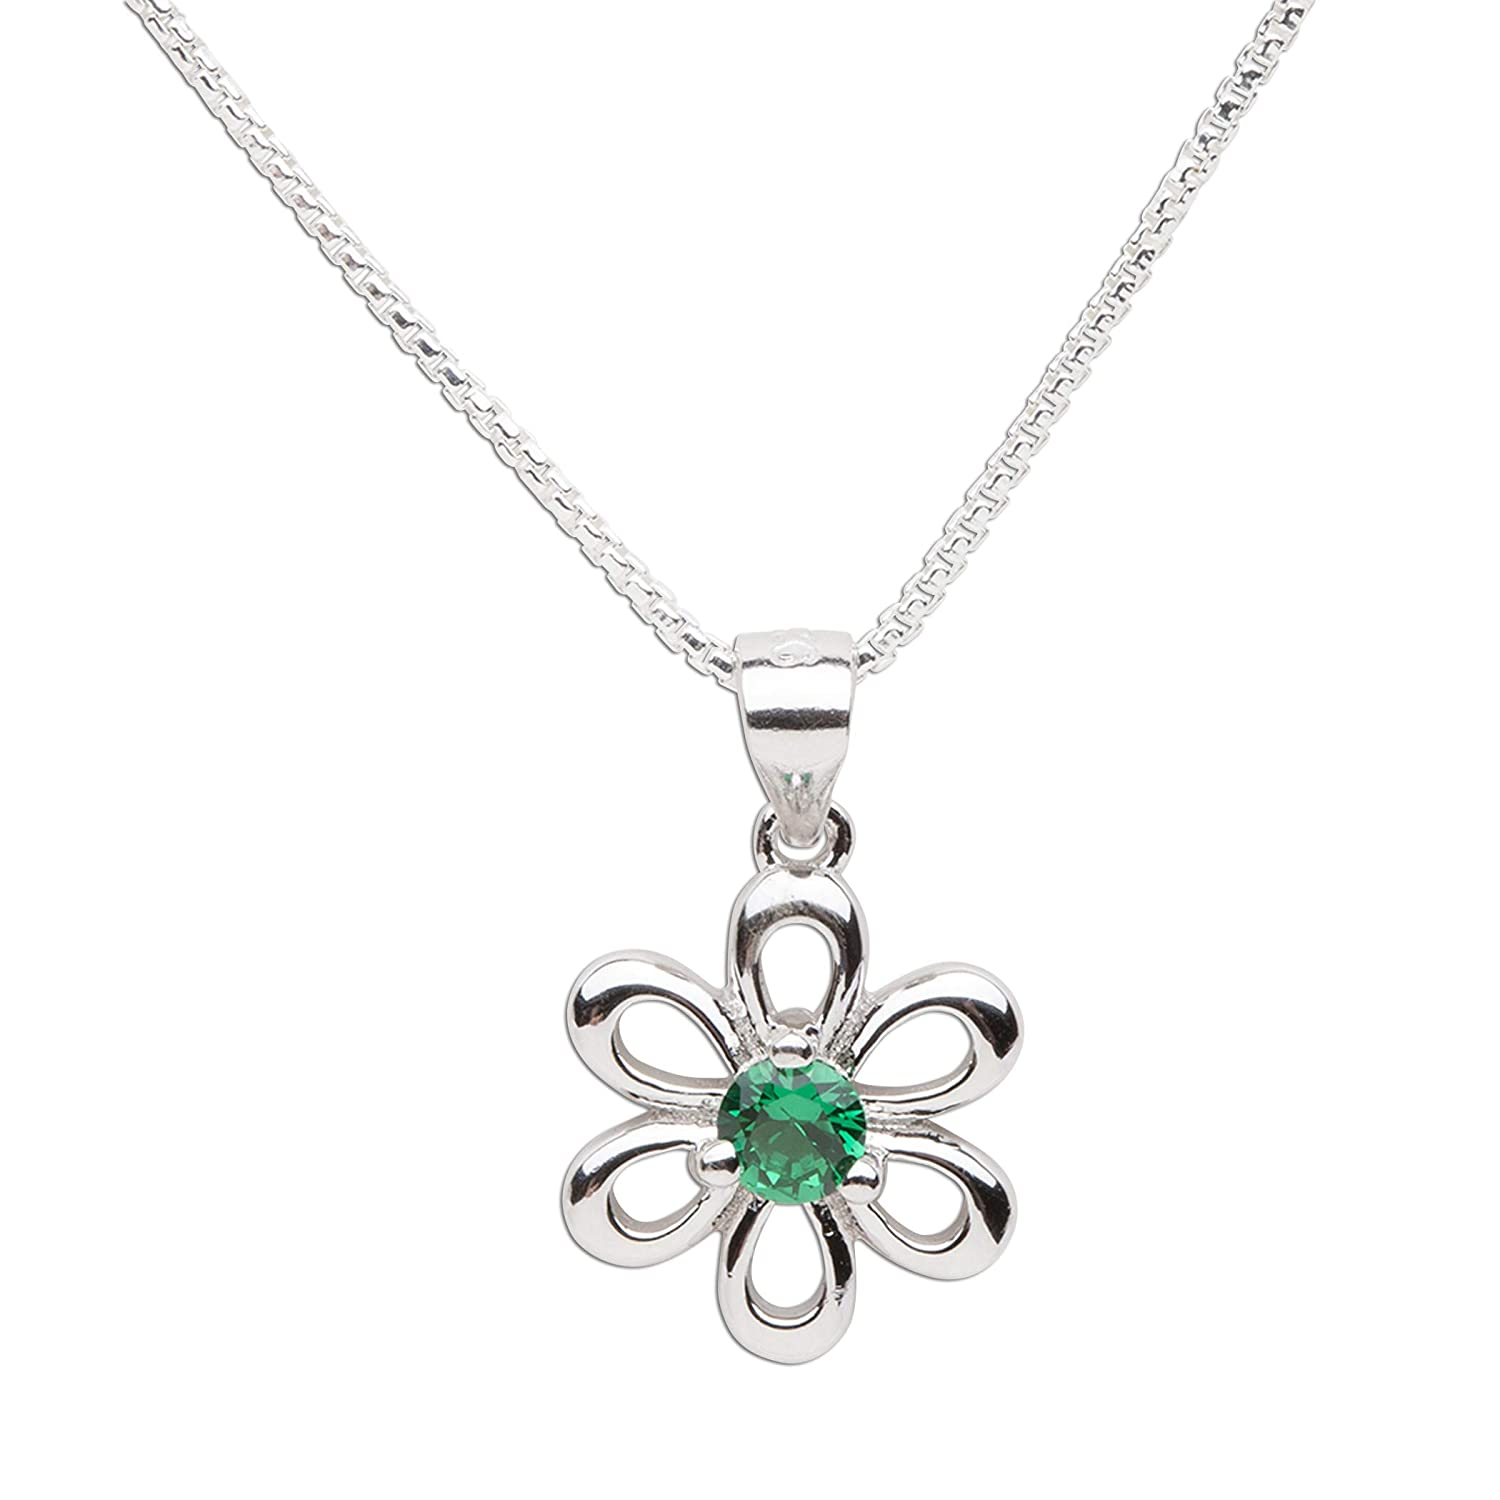 Girls Sterling Silver Daisy Simulated Birthstone Necklace for Children